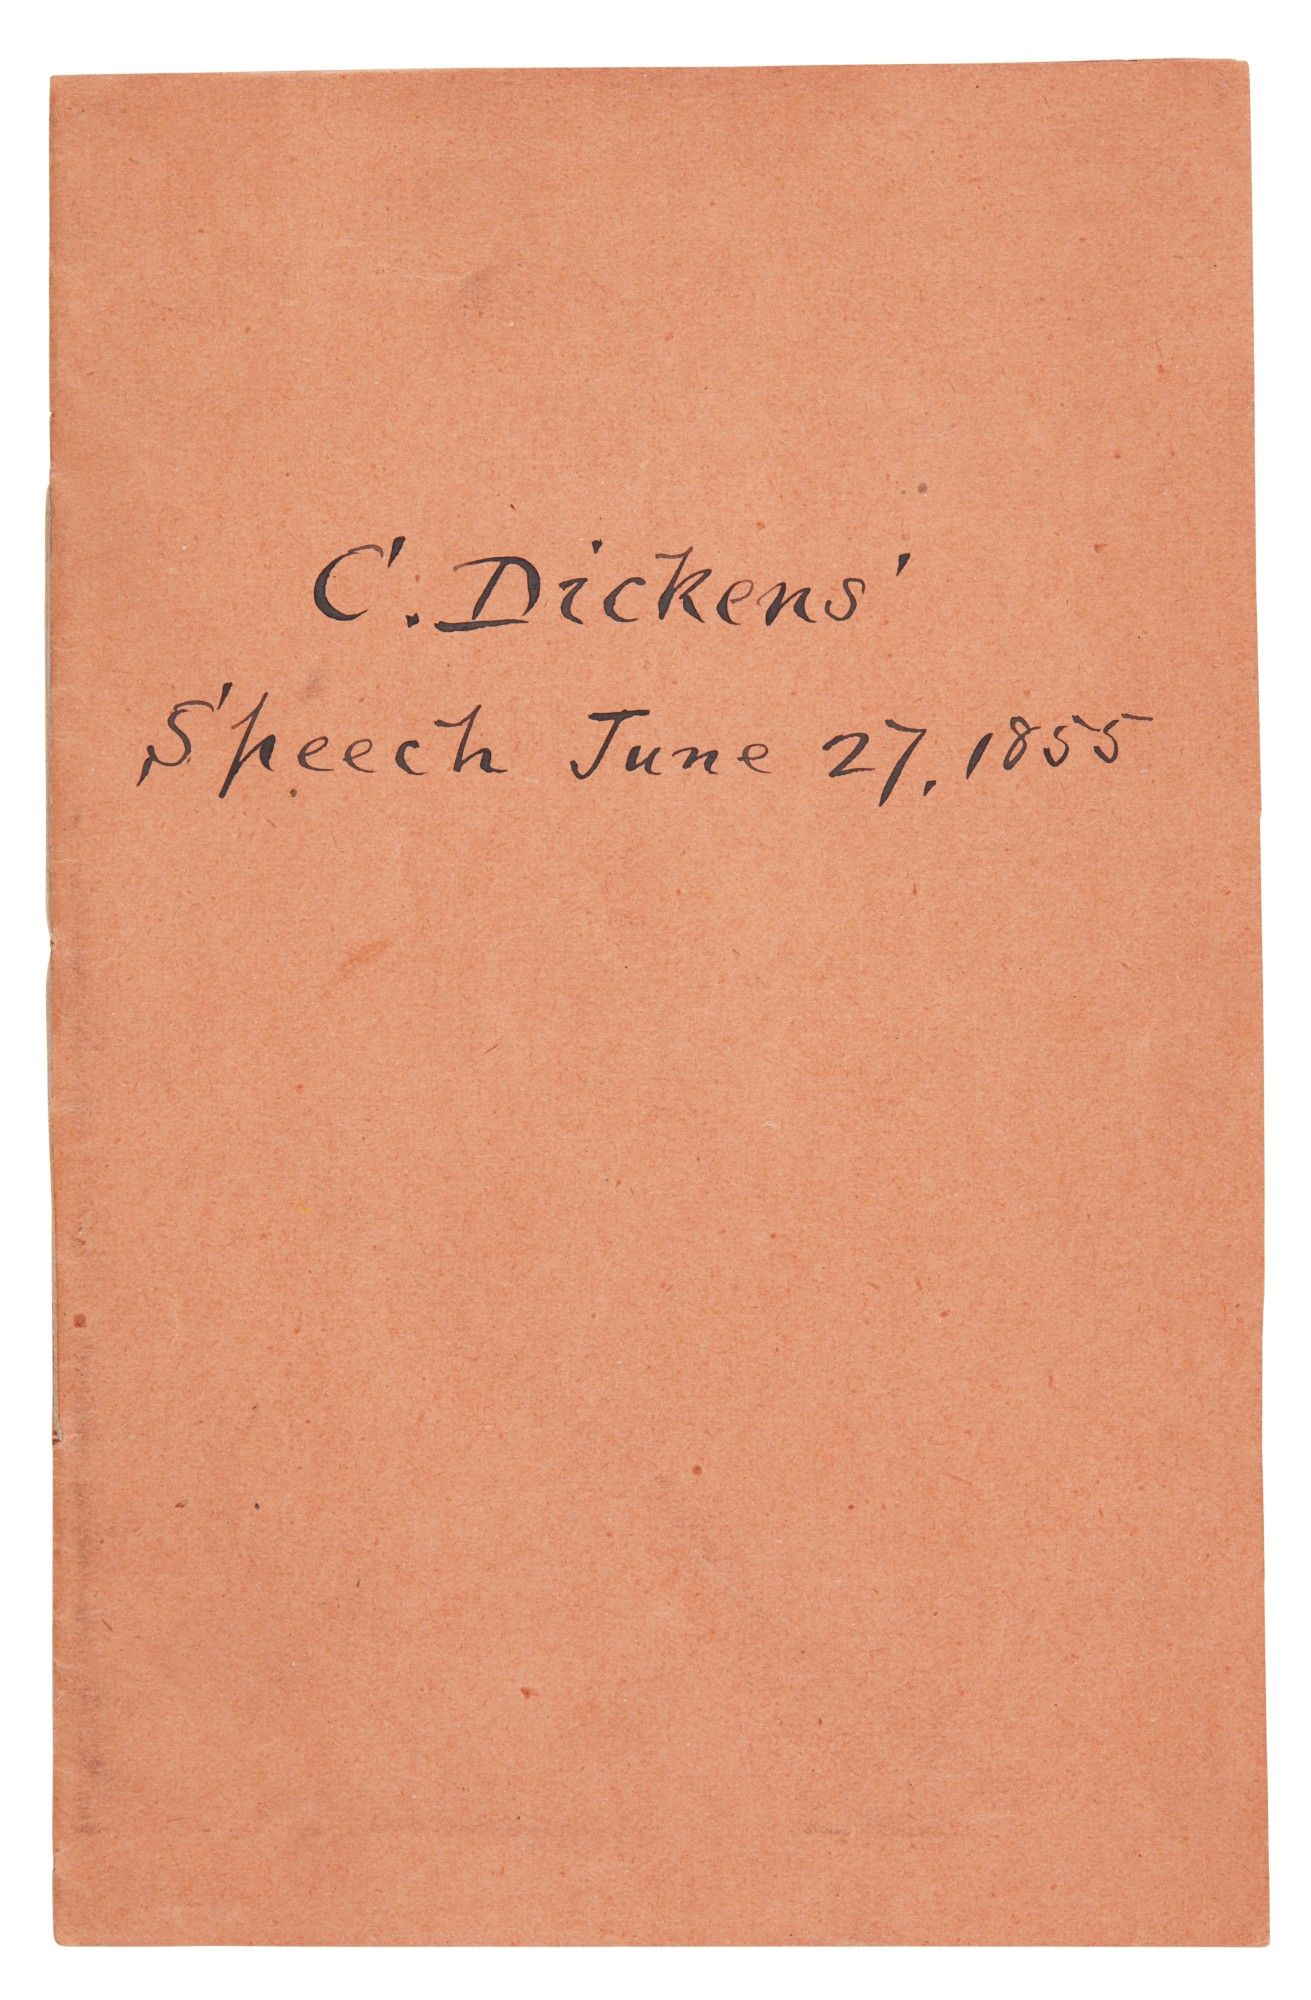 Dickens, Speech of Charles Dickens, Esq., delivered at the meeting of the Administrative Reform Association, 1855